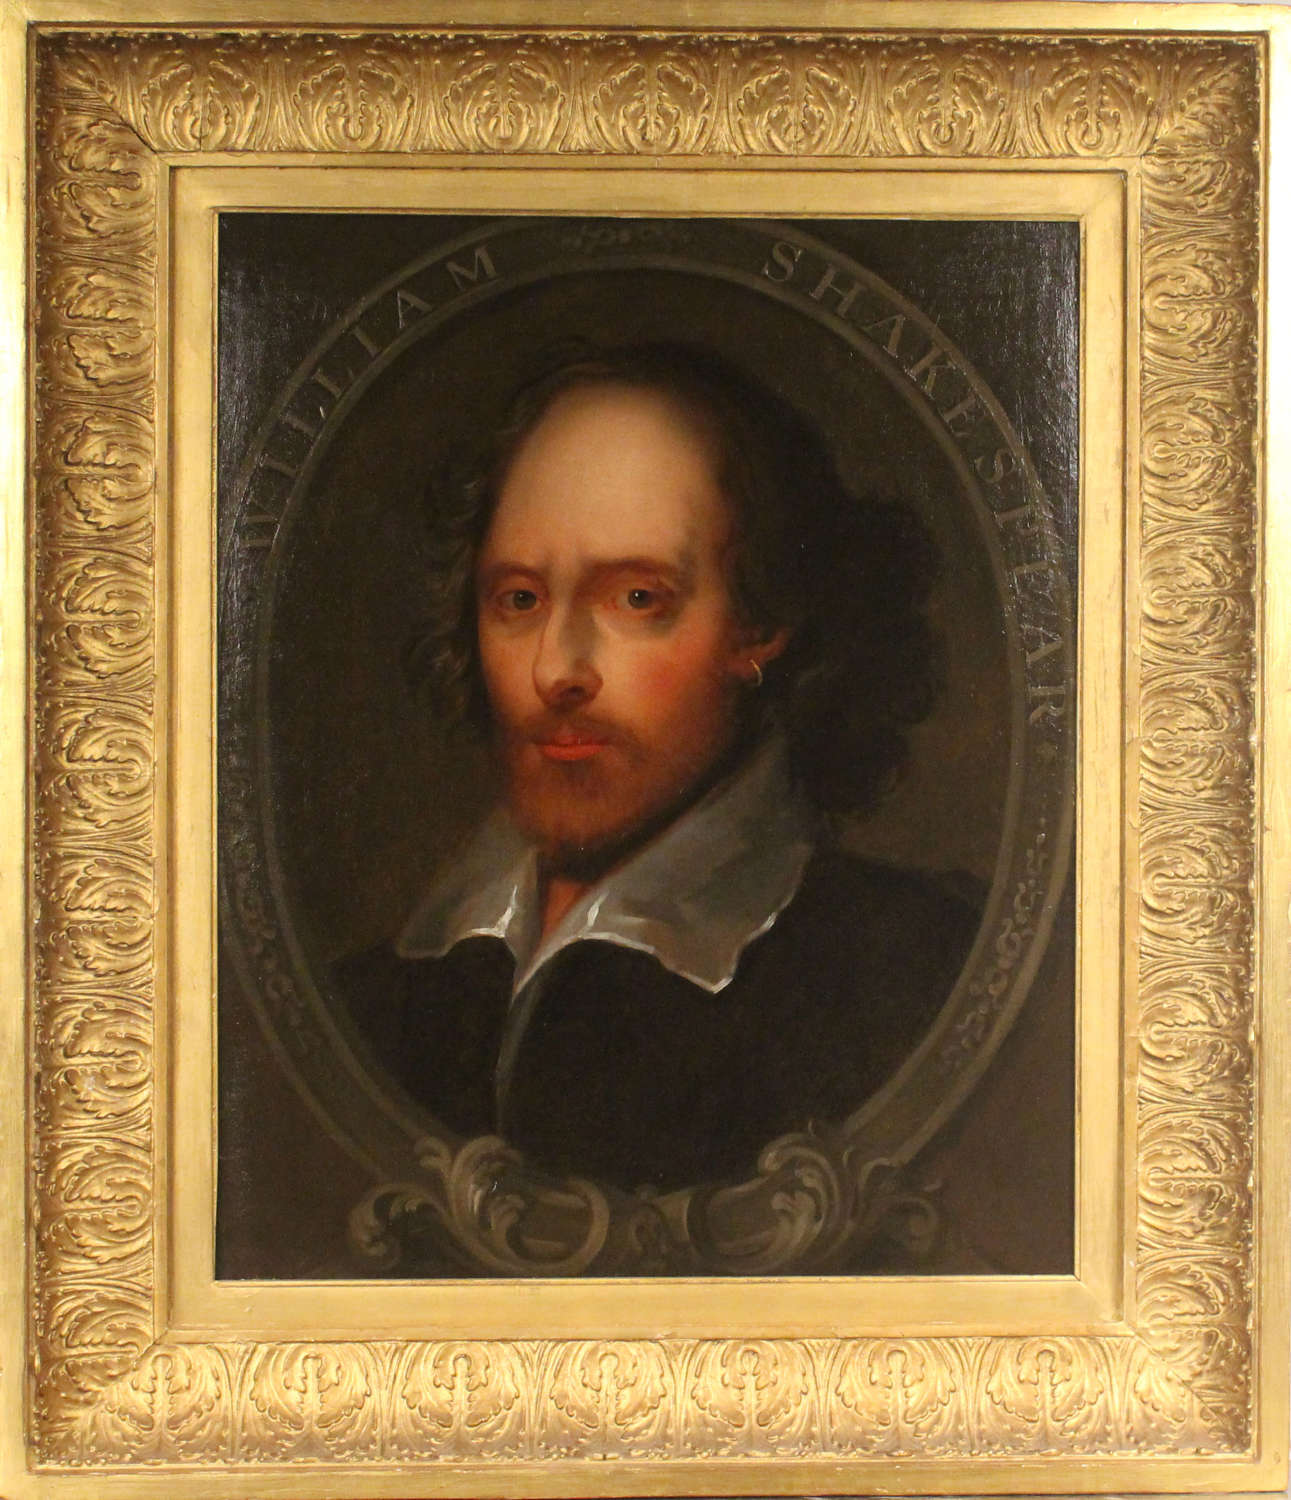 PORTRAIT OF WILLIAM SHAKESPEARE ~ BRITISH SCHOOL